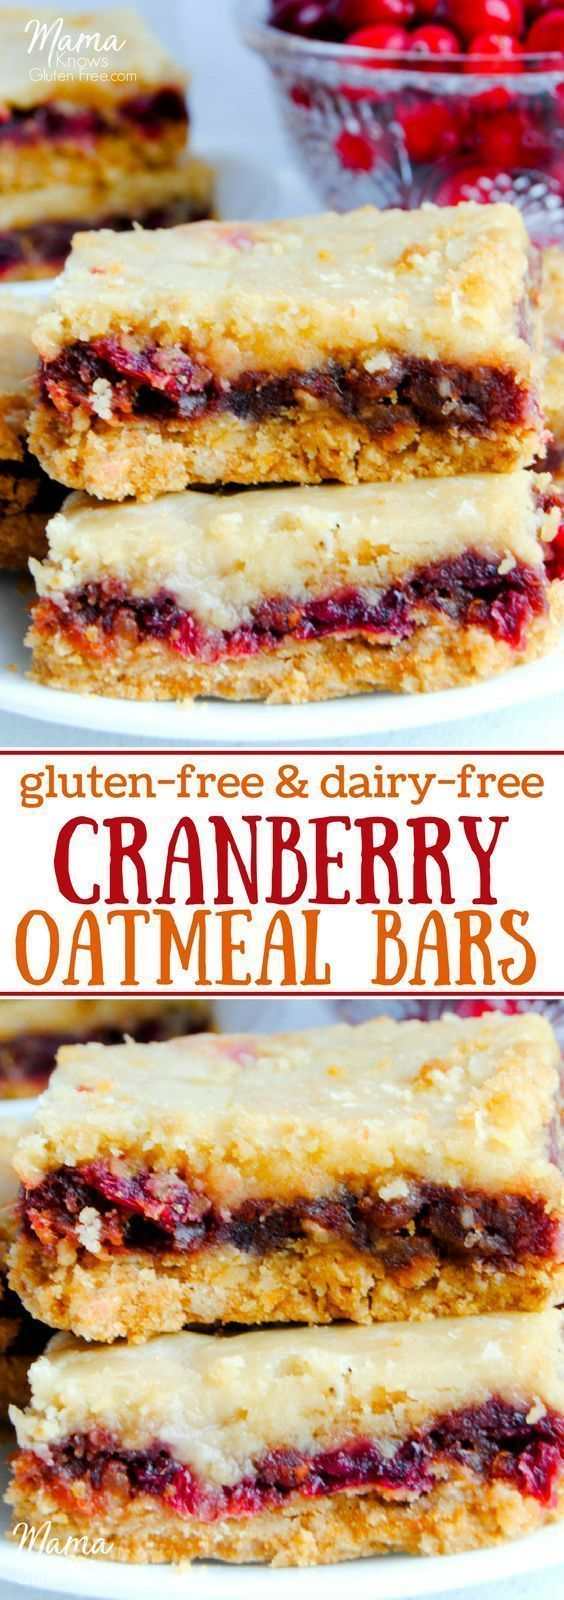 Super easy gluten-free cranberry oatmeal bars are a combination of sweet and tart with an oatmeal cookie drizzled with orange glaze. #glutenfreedessert #glutenfreethanksgiving